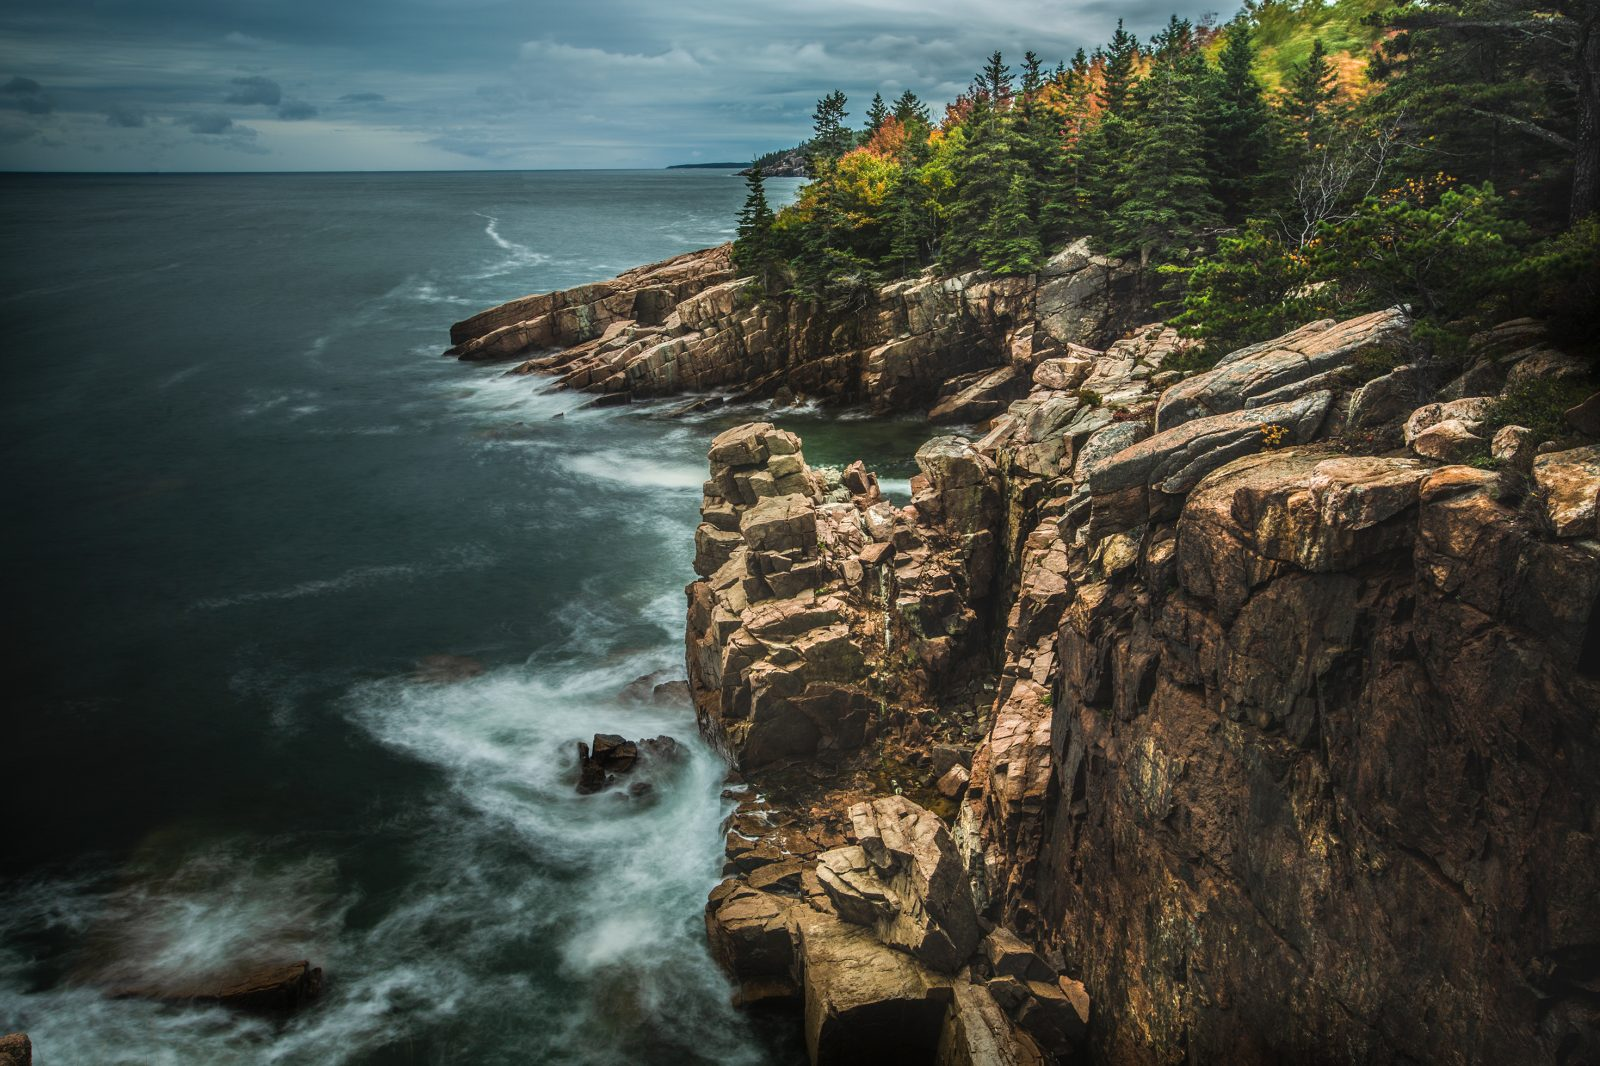 Ocean view from bluff, Acadia National Park, Maine